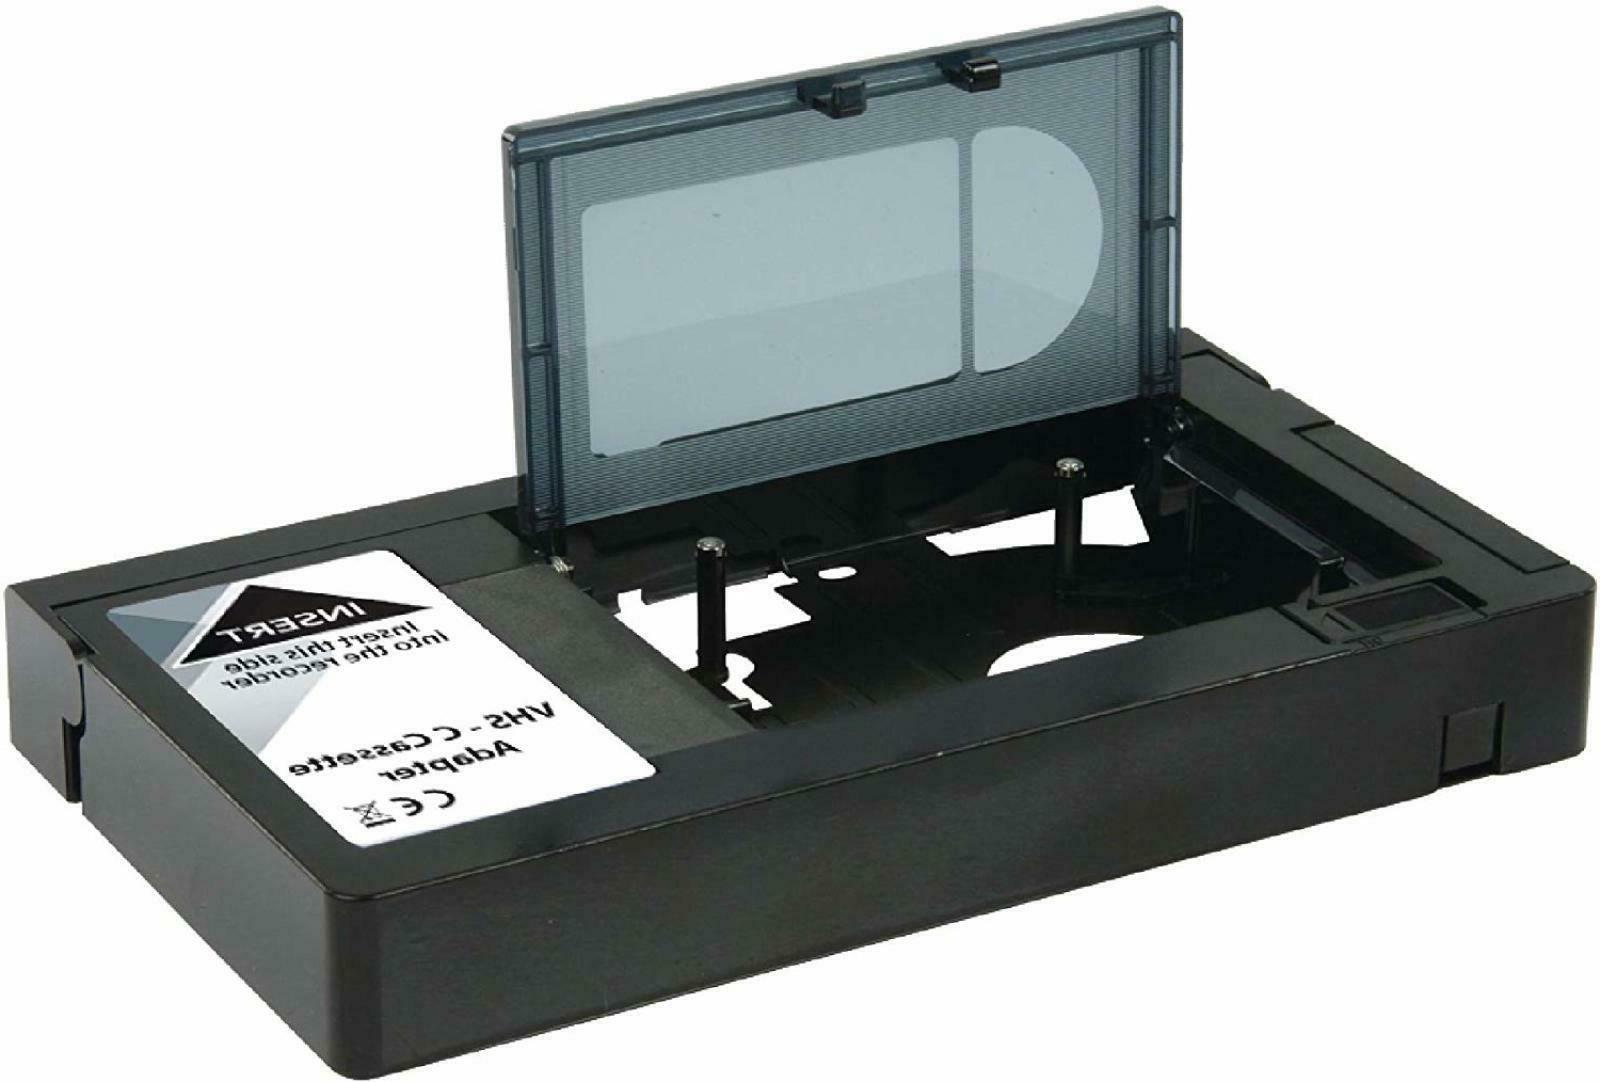 Motorised Compact Video Cassette Tape Player Record Adapter